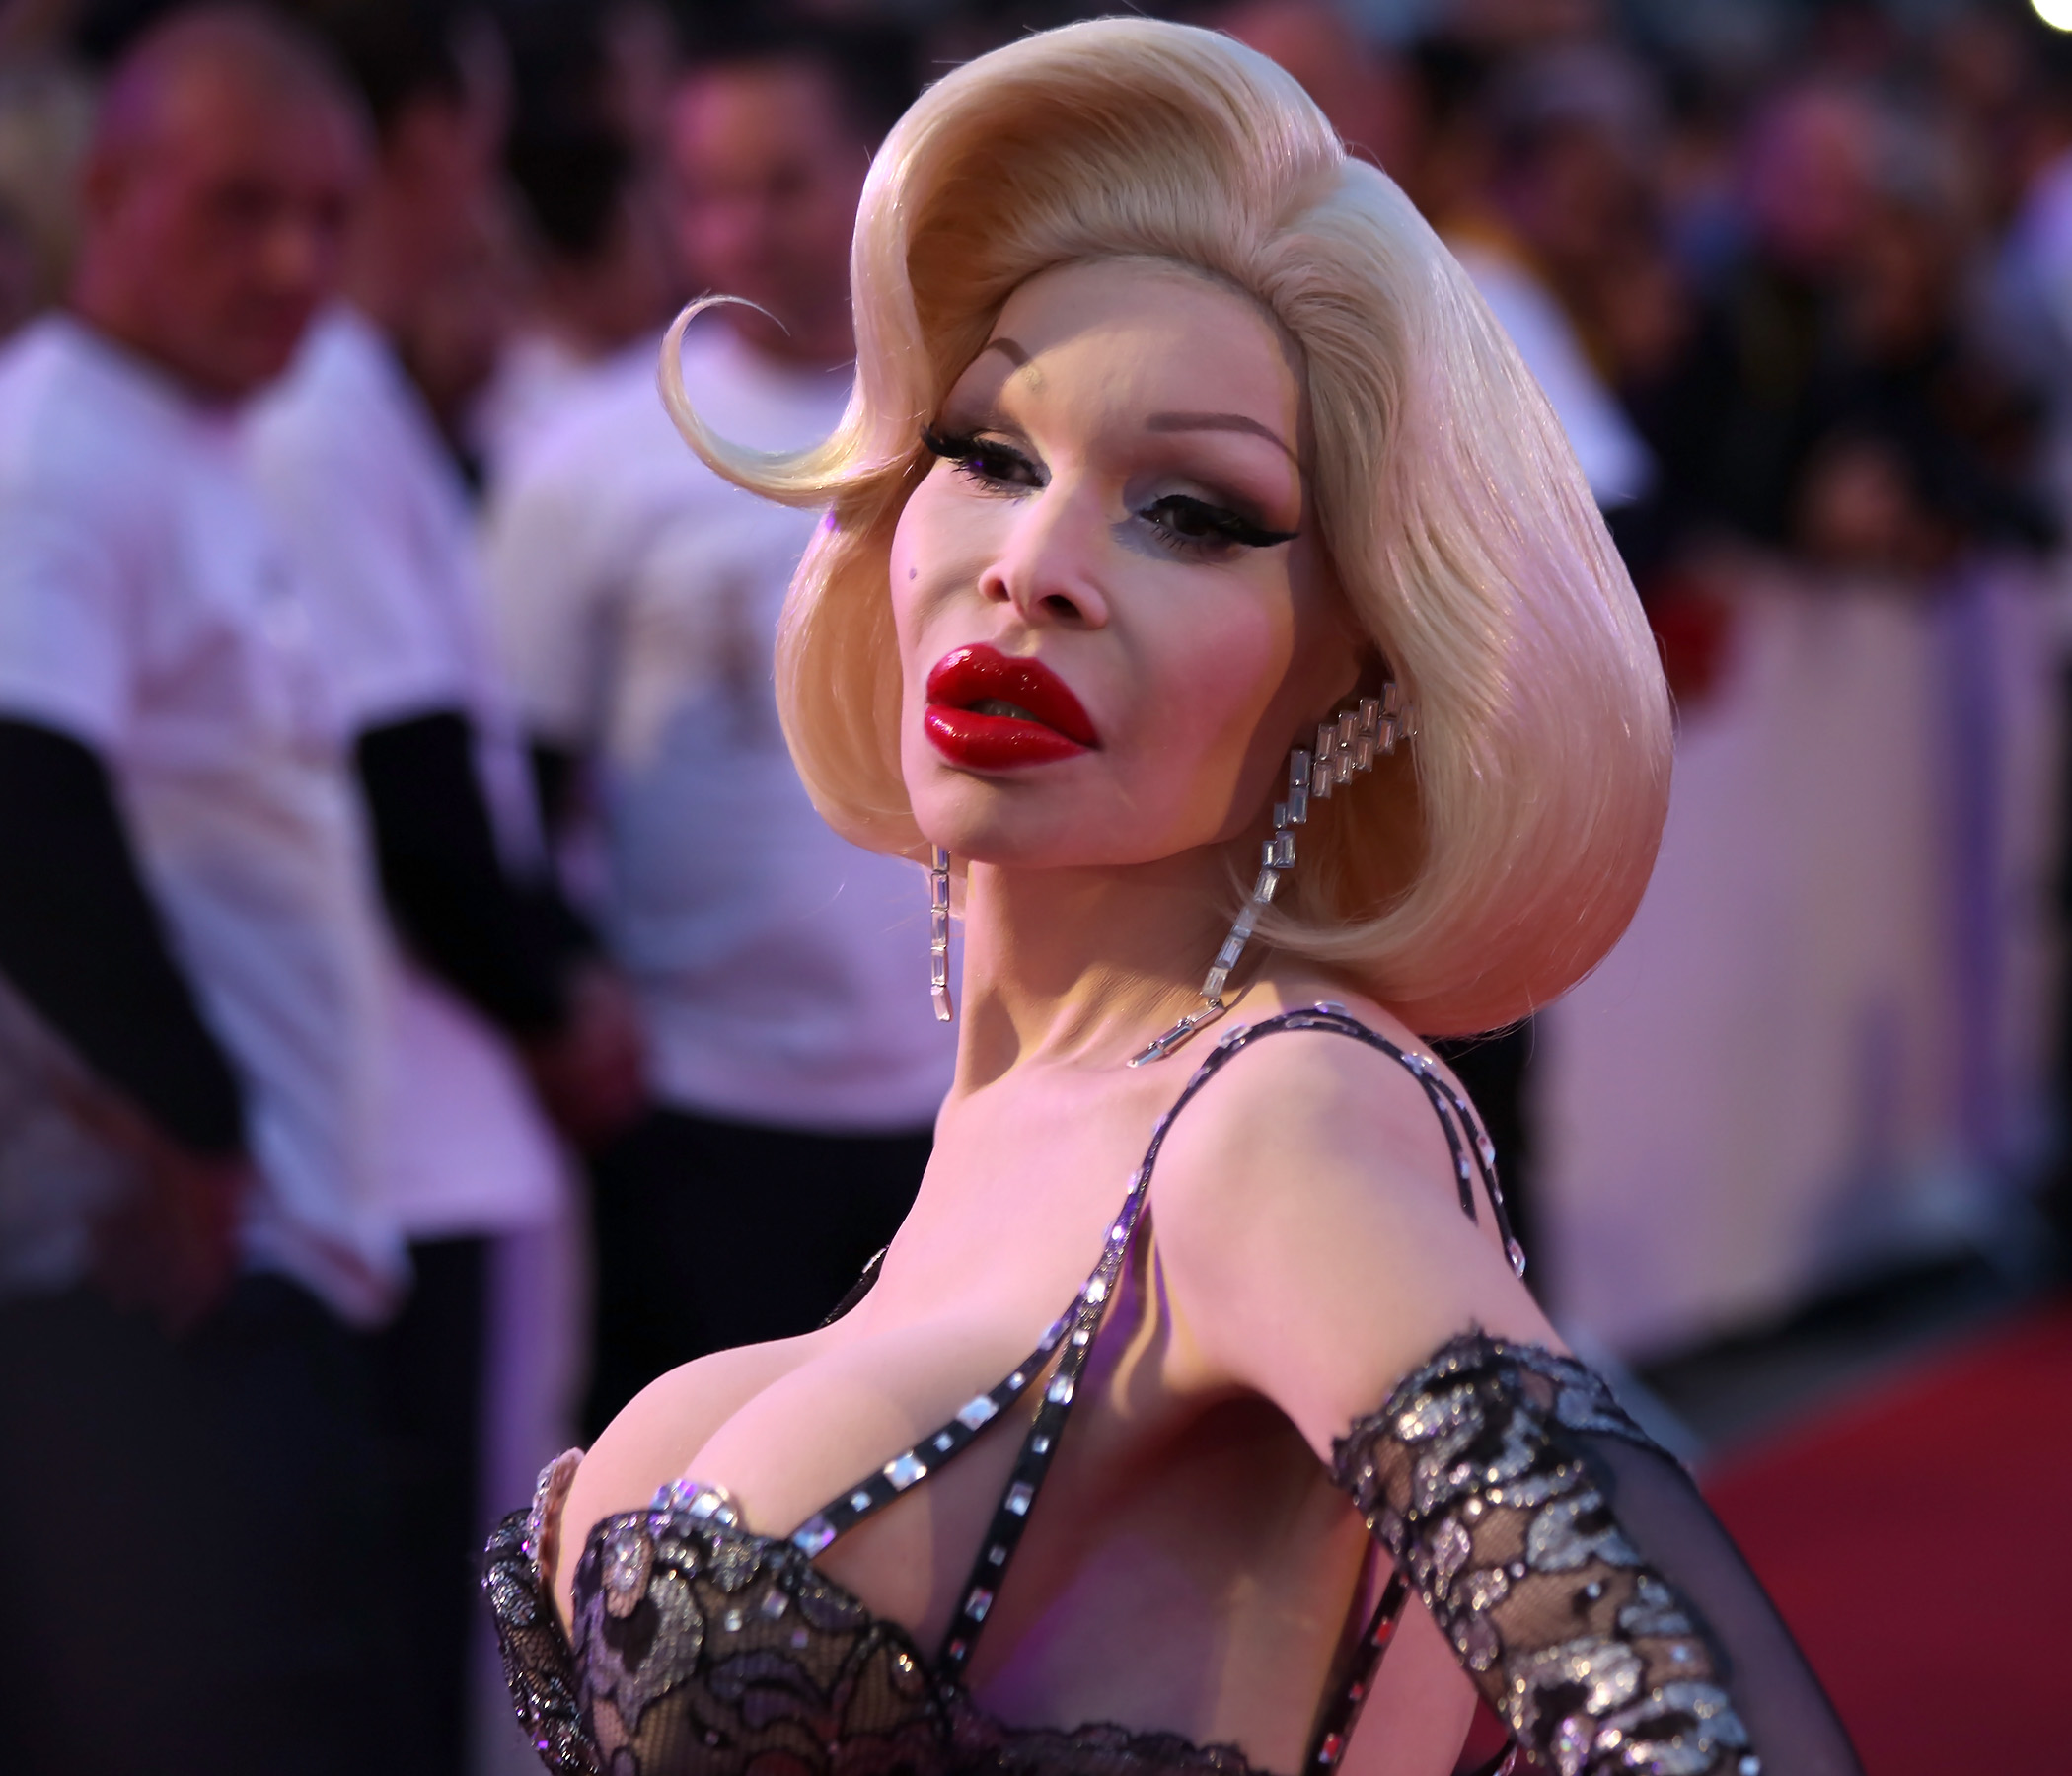 celebs who had gender reassignment